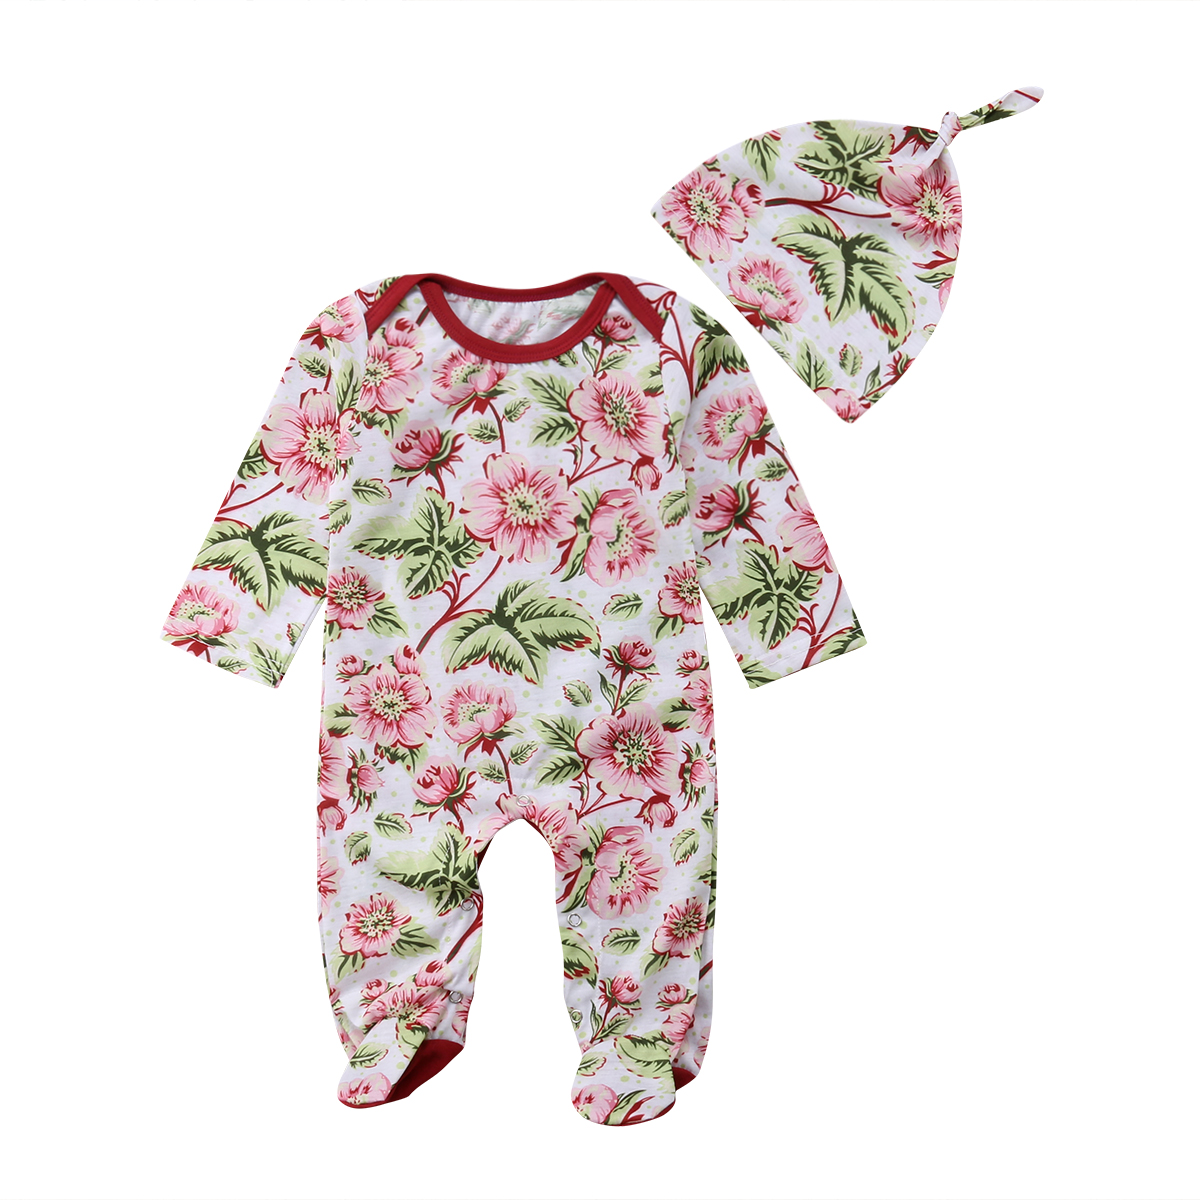 Autumn Newborn Baby Girl Clothes Floral Long Sleeves Jumpsuit With Feet Footies+ Hat Outfits New 0-2Y